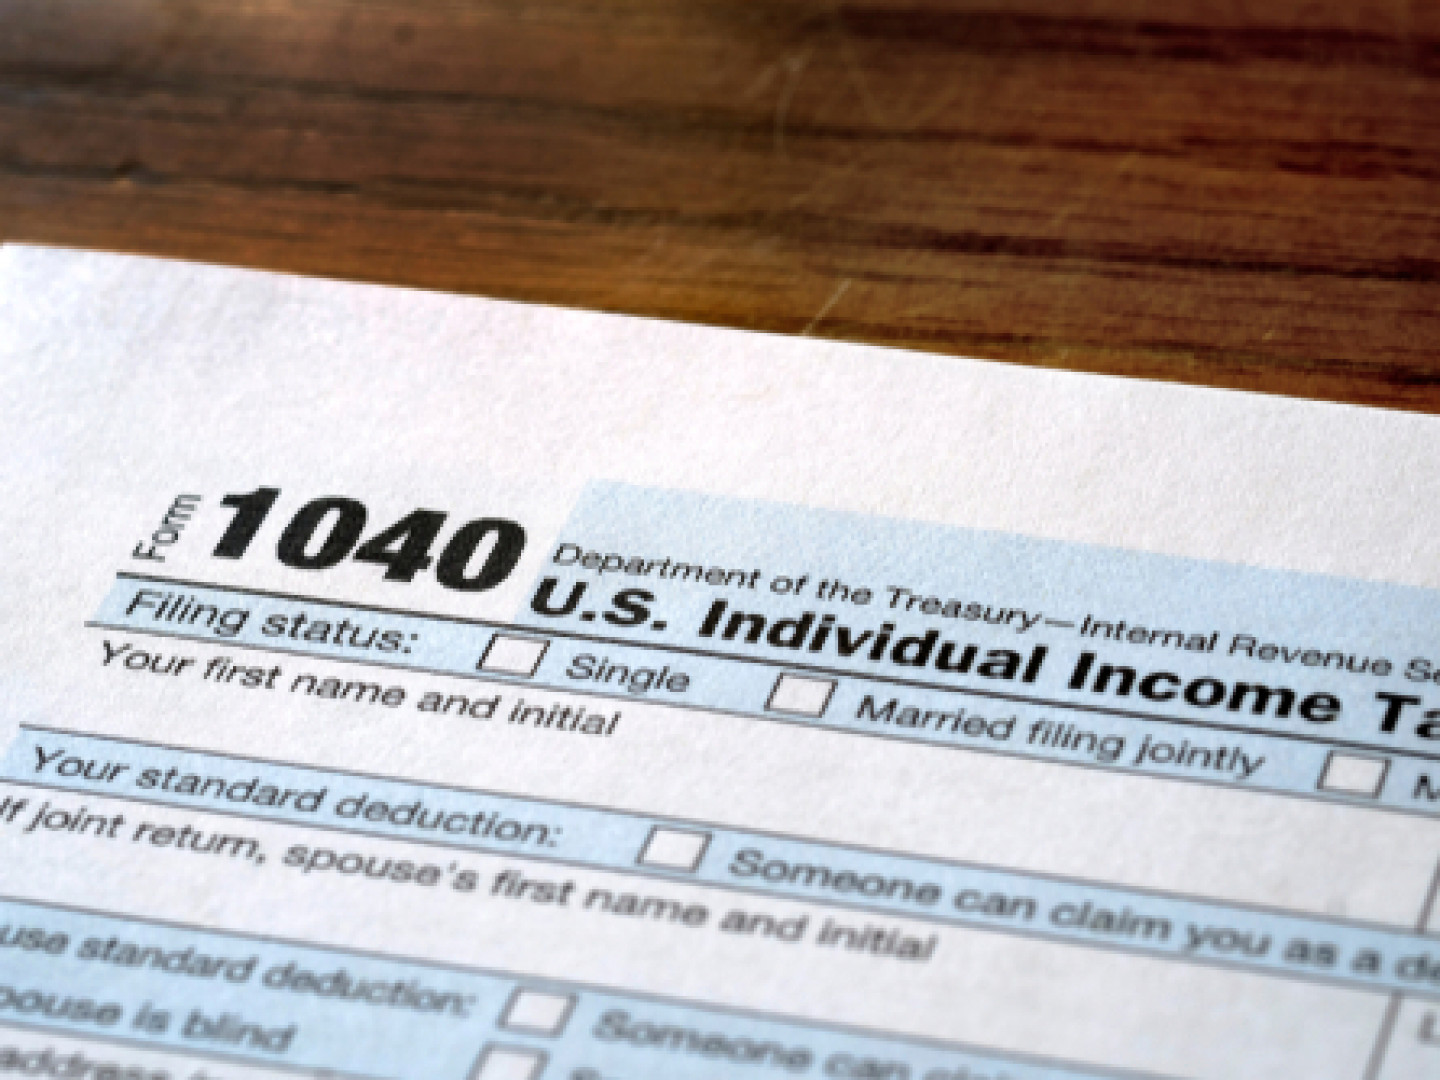 professional tax preparation and planning in Chicago, IL